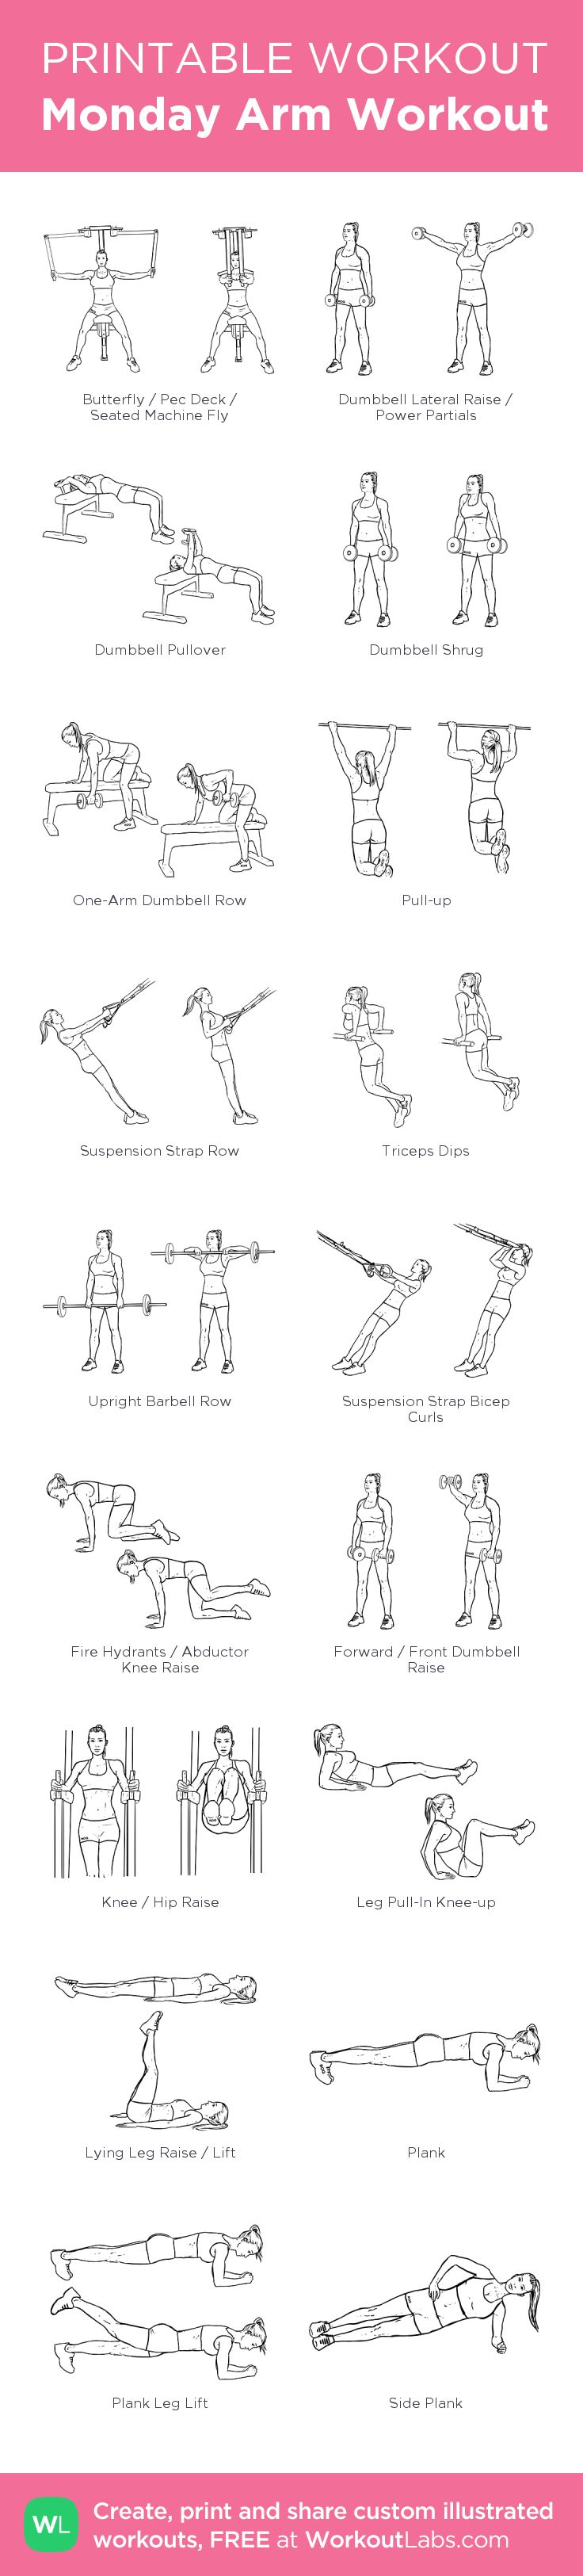 Monday Workout arms & abs